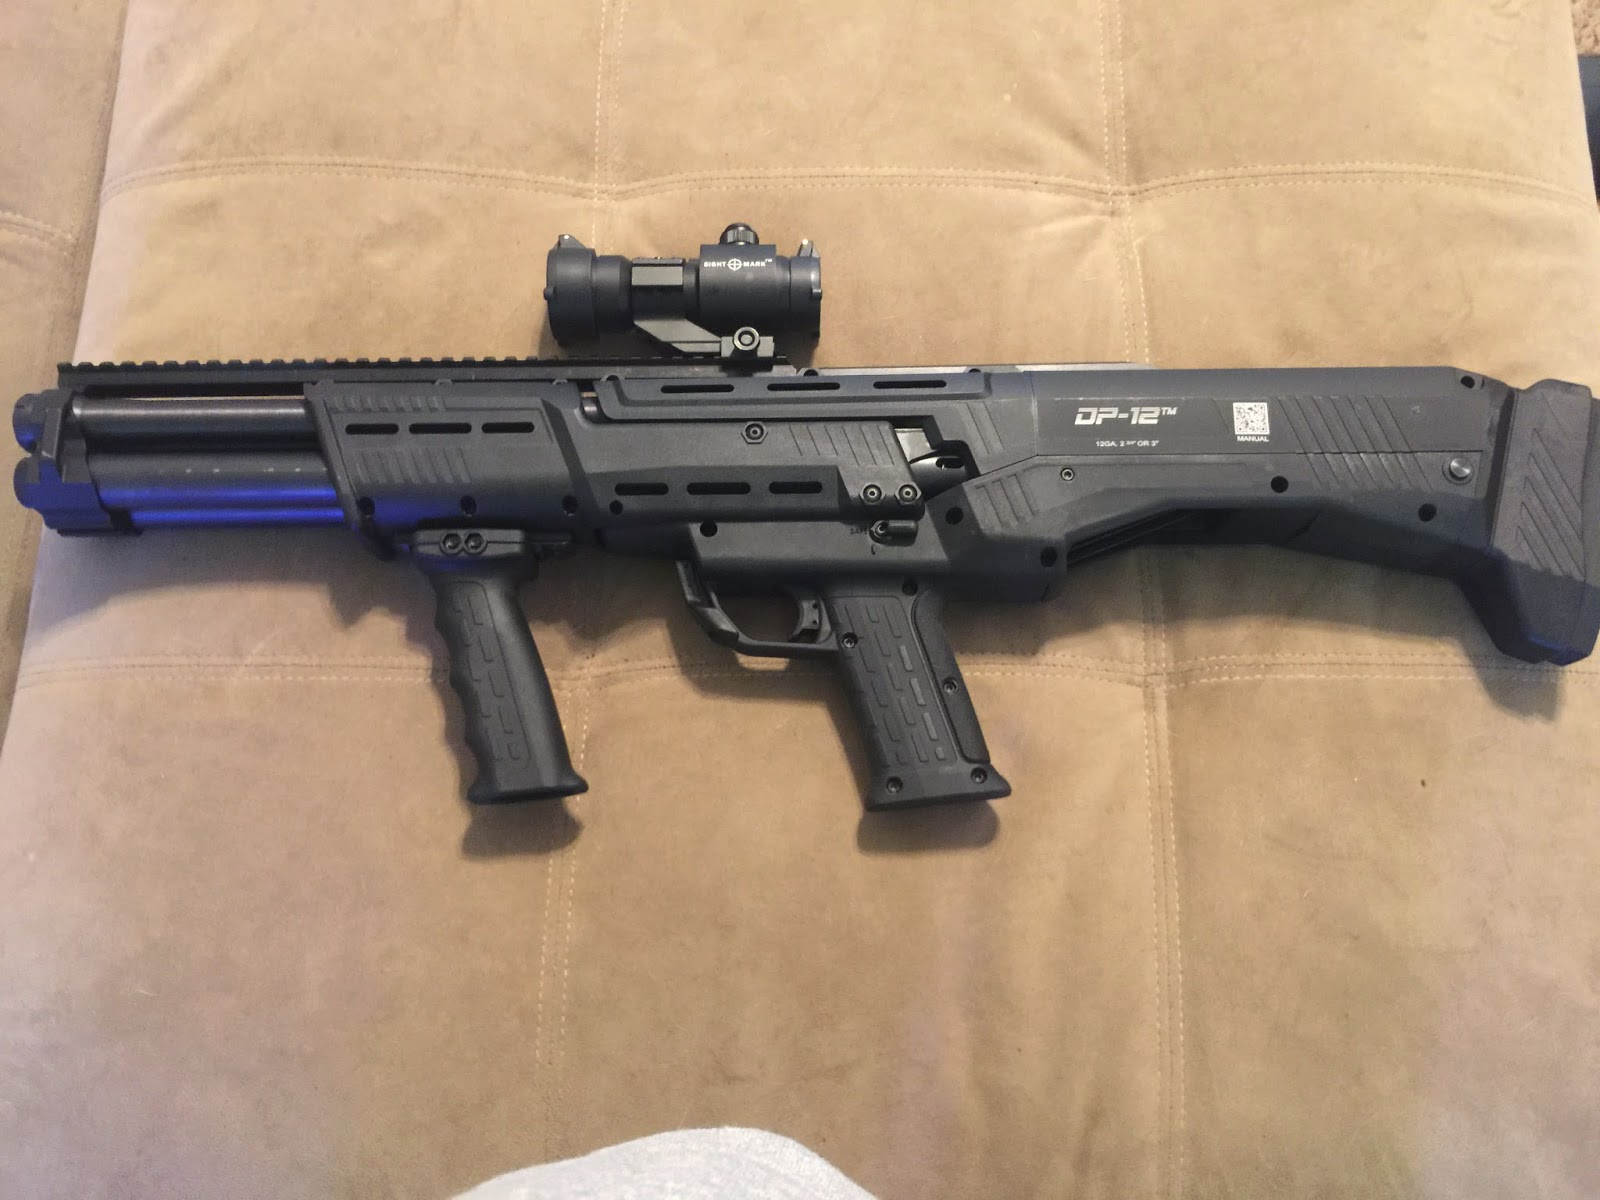 Seagulls And Guns: Yes, I'm Doing A Gun Review. The DP-12